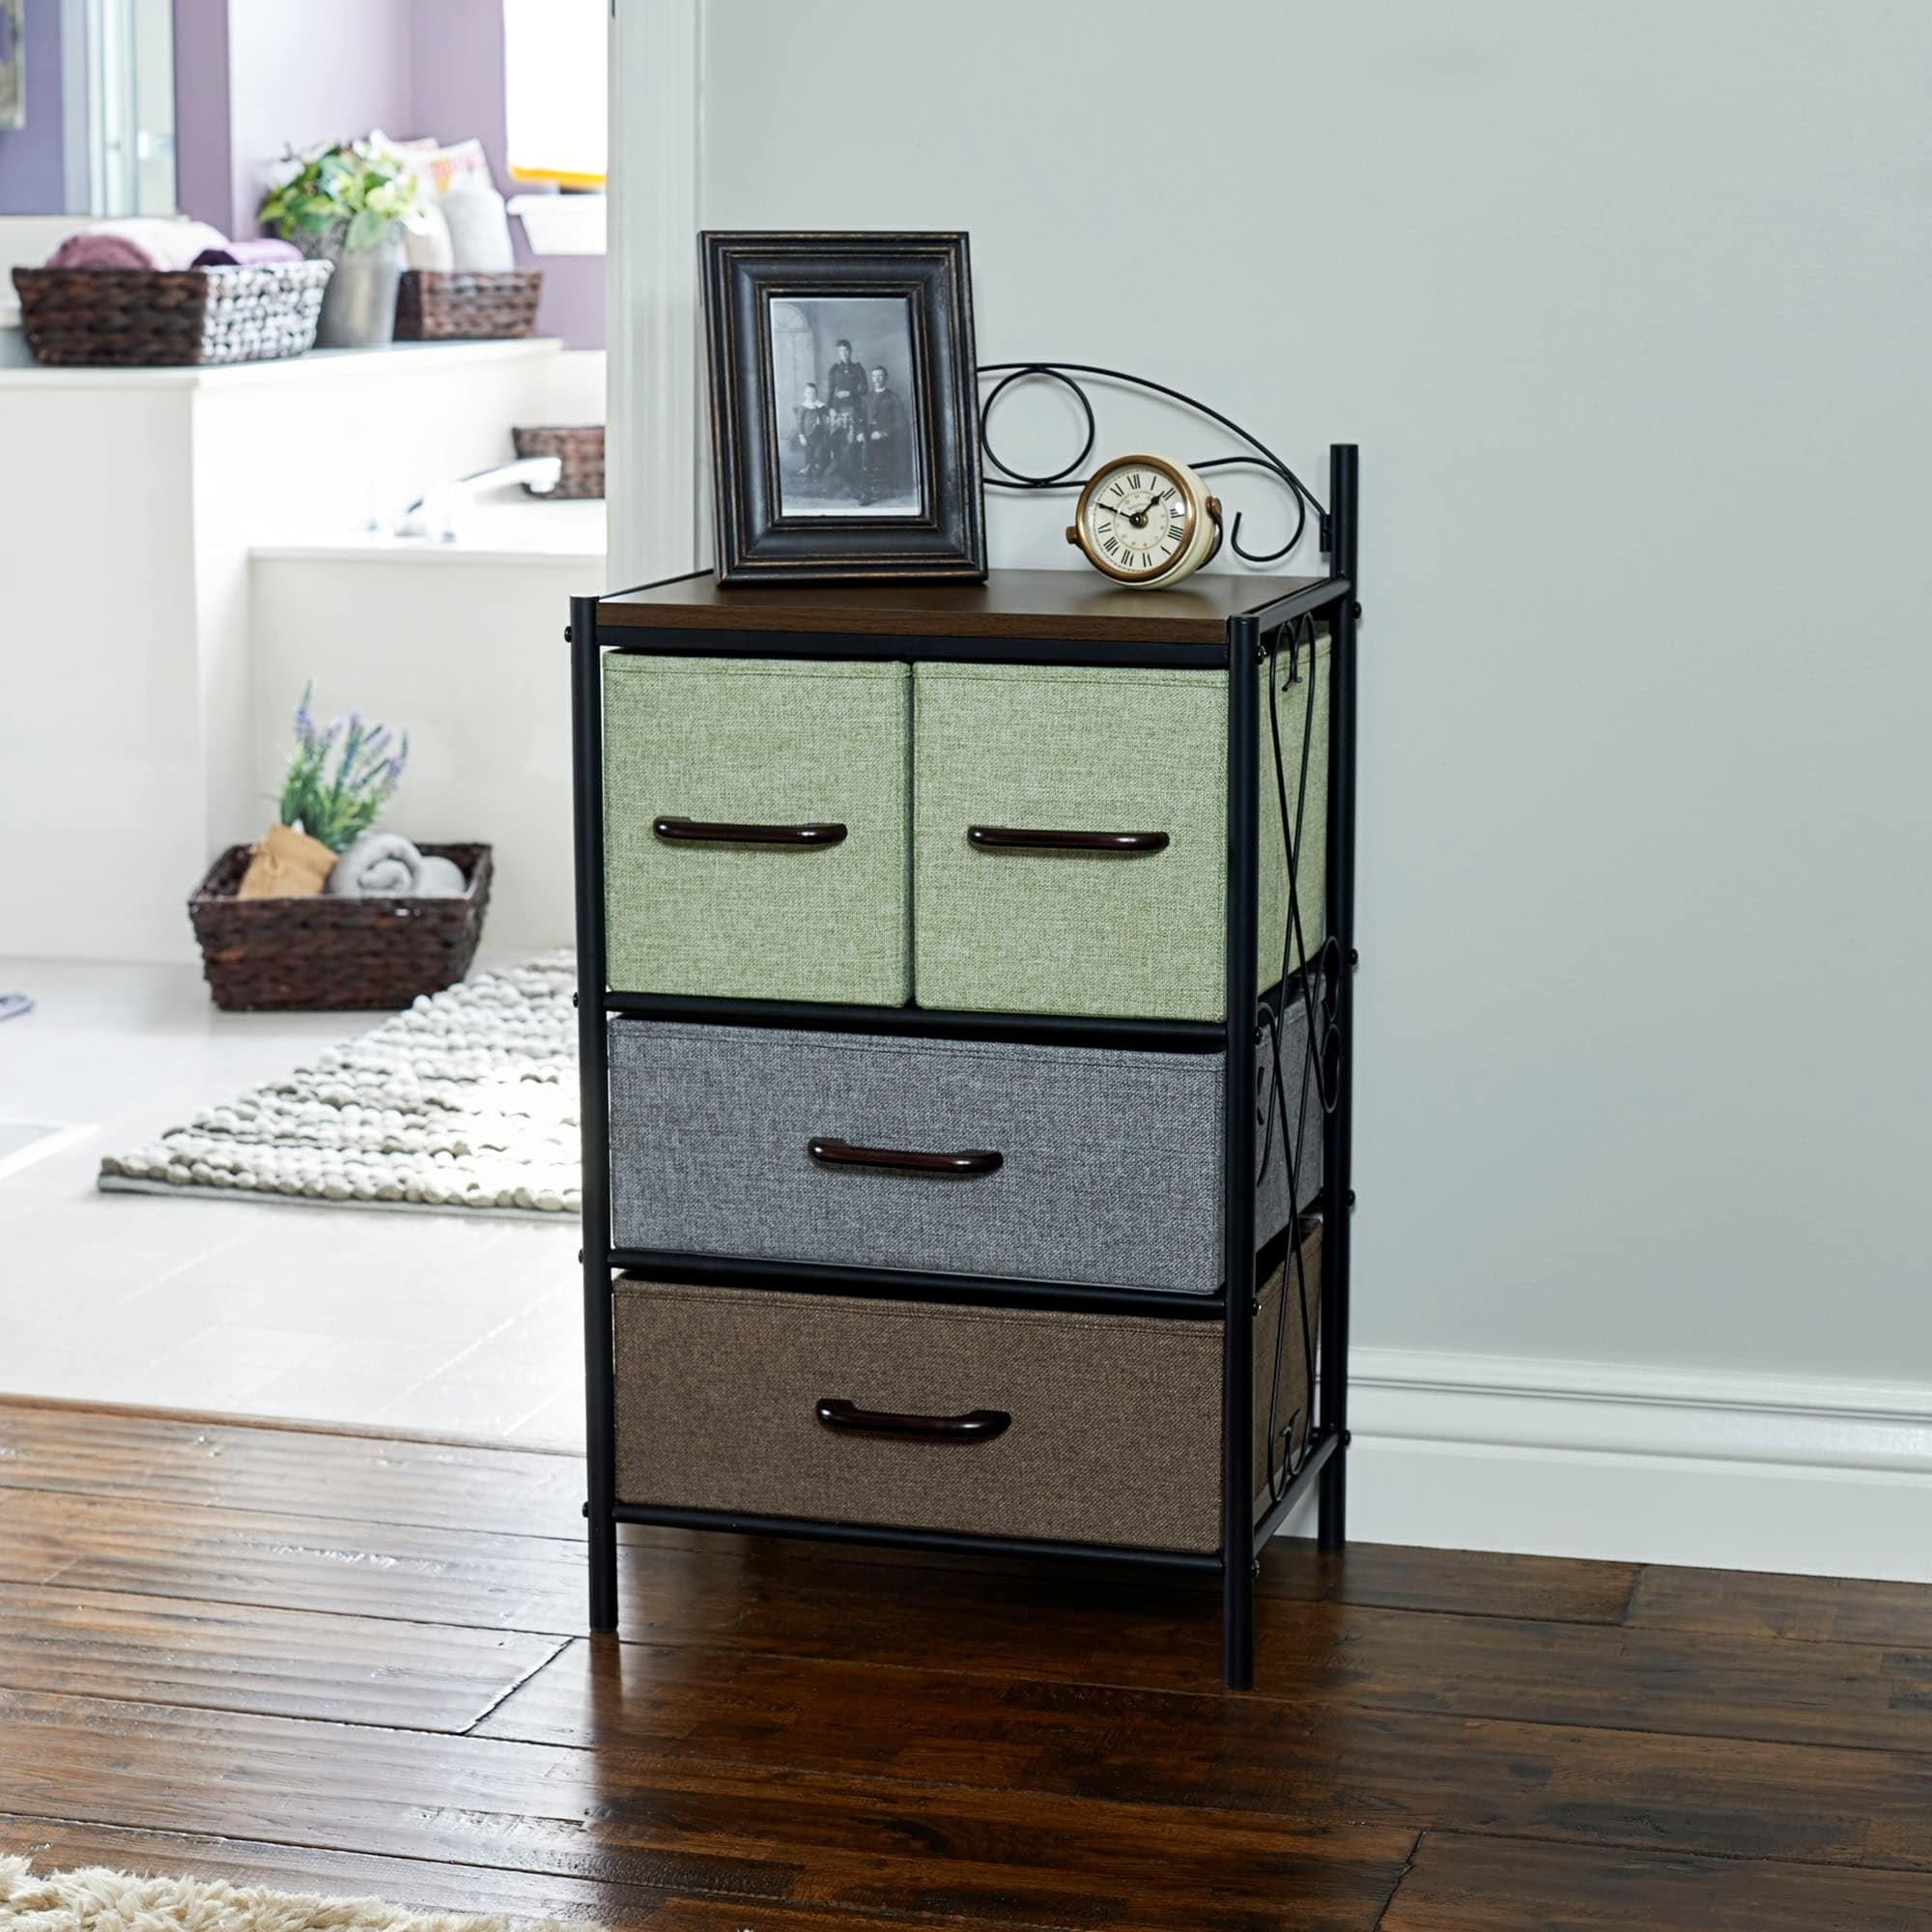 accent tables top decor furniture victorian table household essentials end with storage drawers see more hot sofa ikea vitra chair replica espresso side console small lamp for